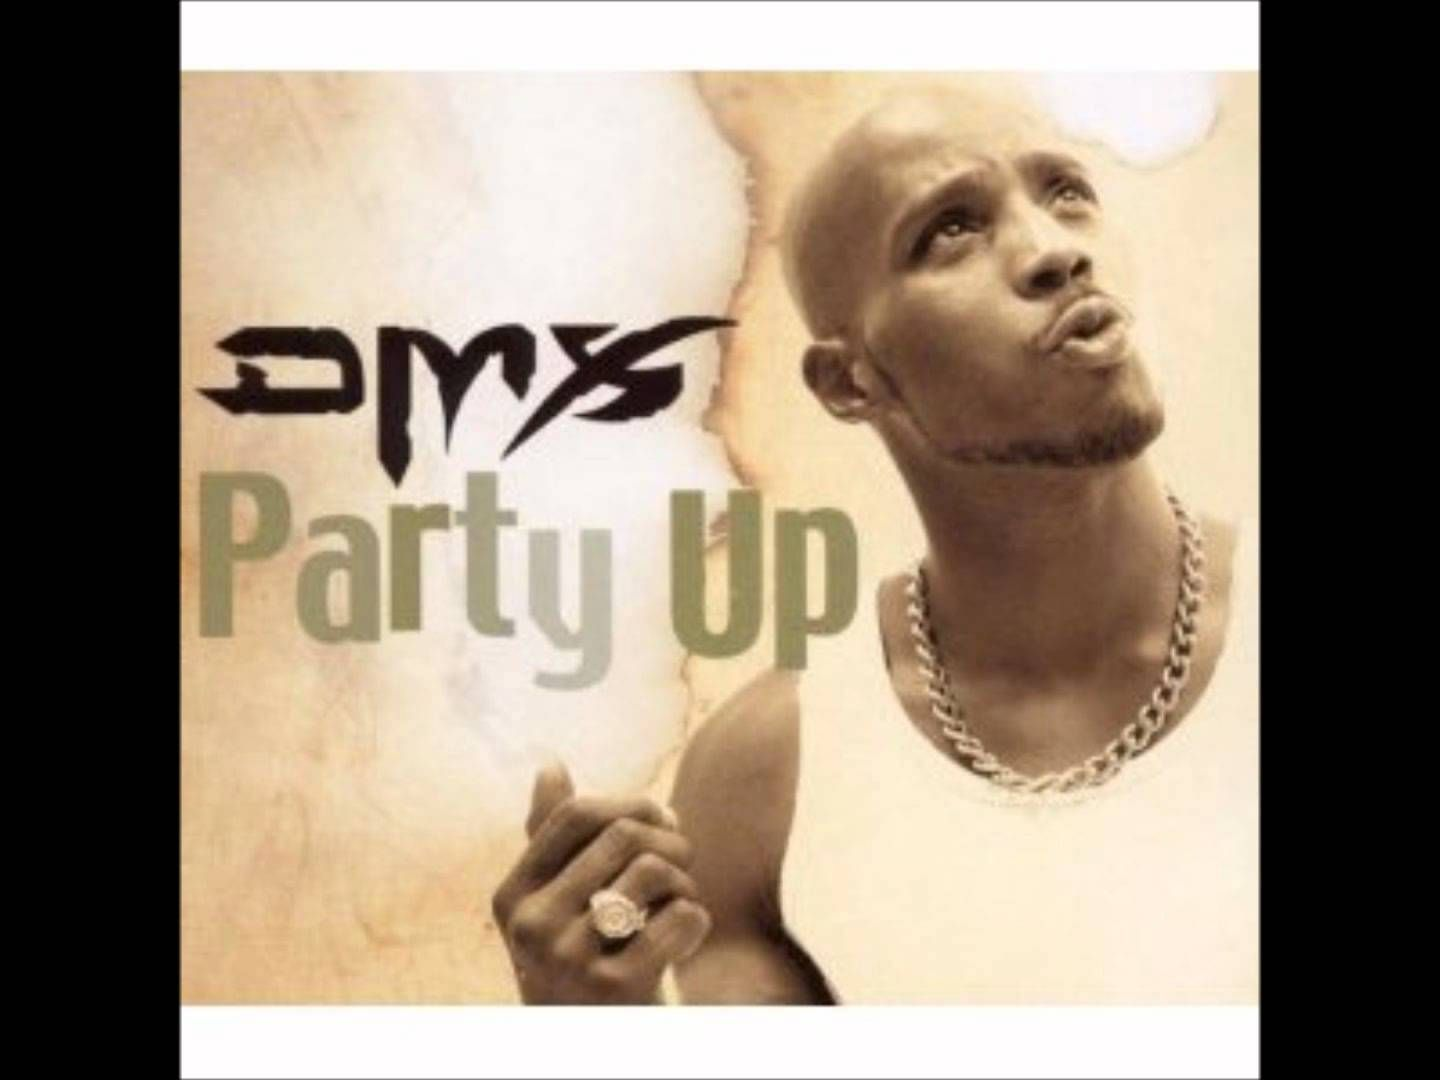 Party Up Clean Dmx Hooked On A Feeling Round Sunglass Men Old School Party